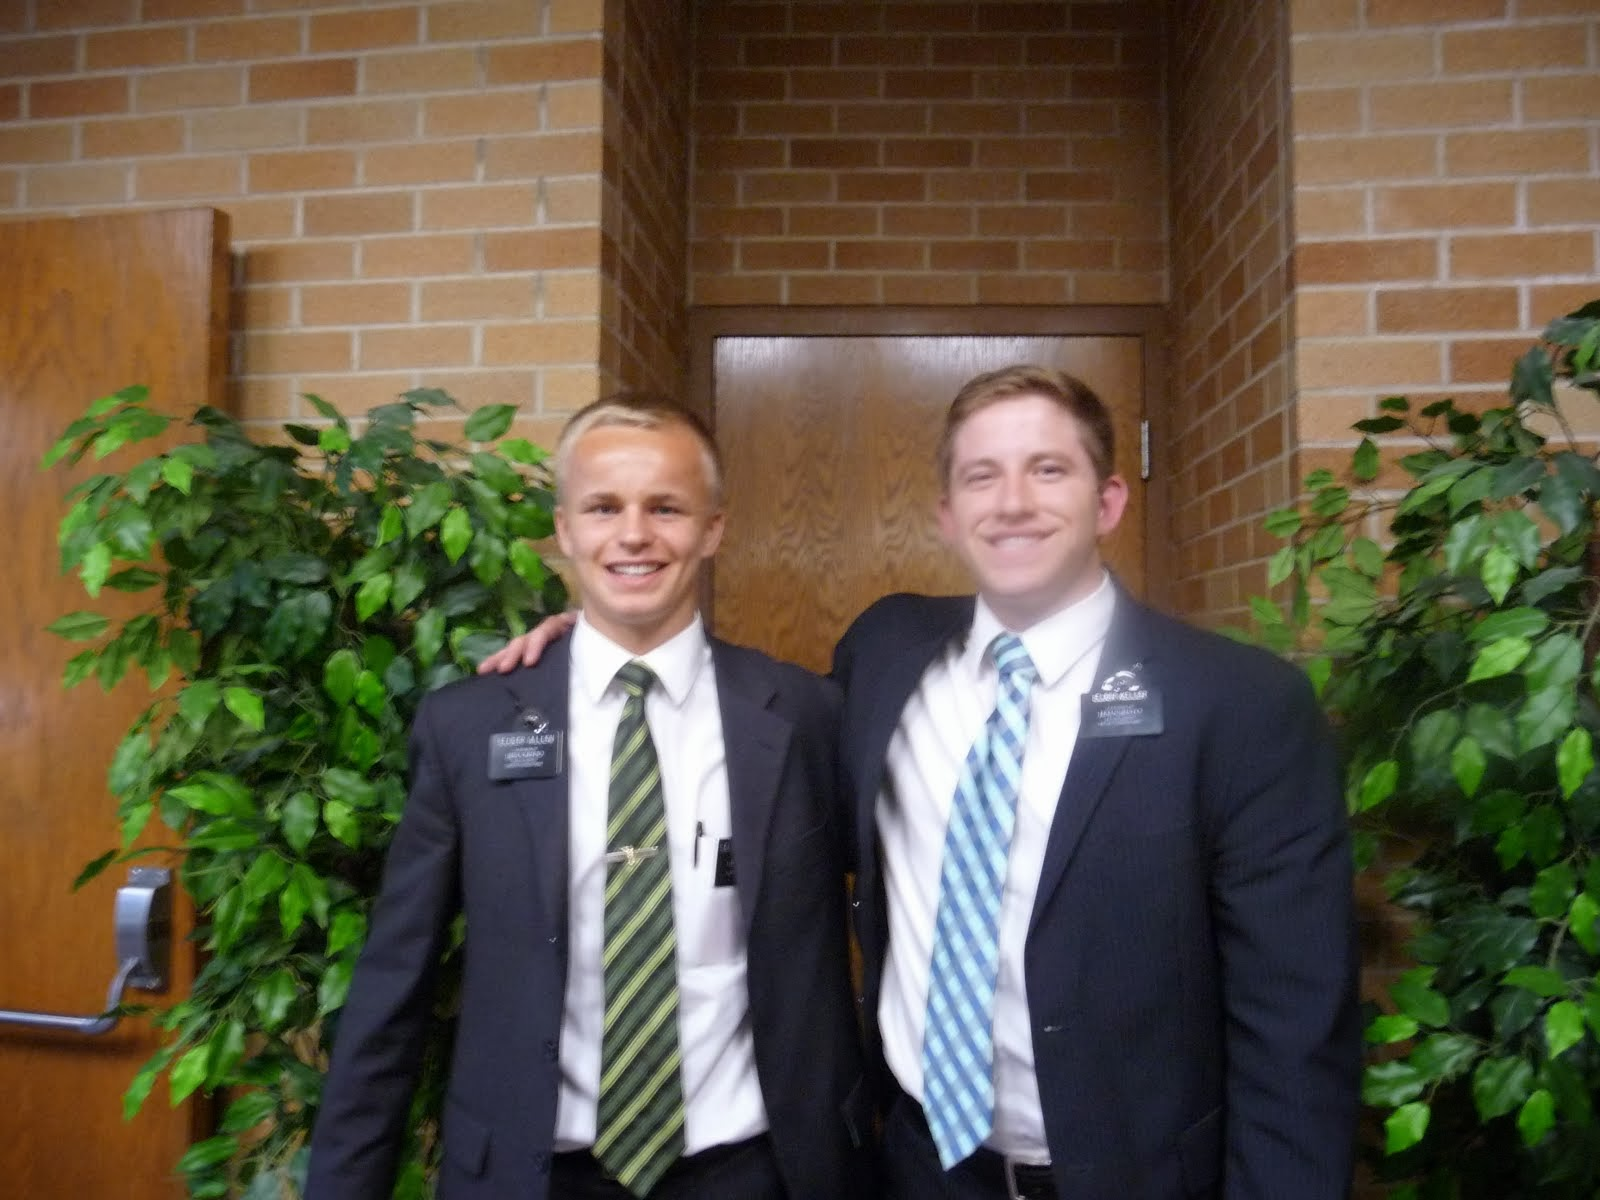 Elder Allen and Keller